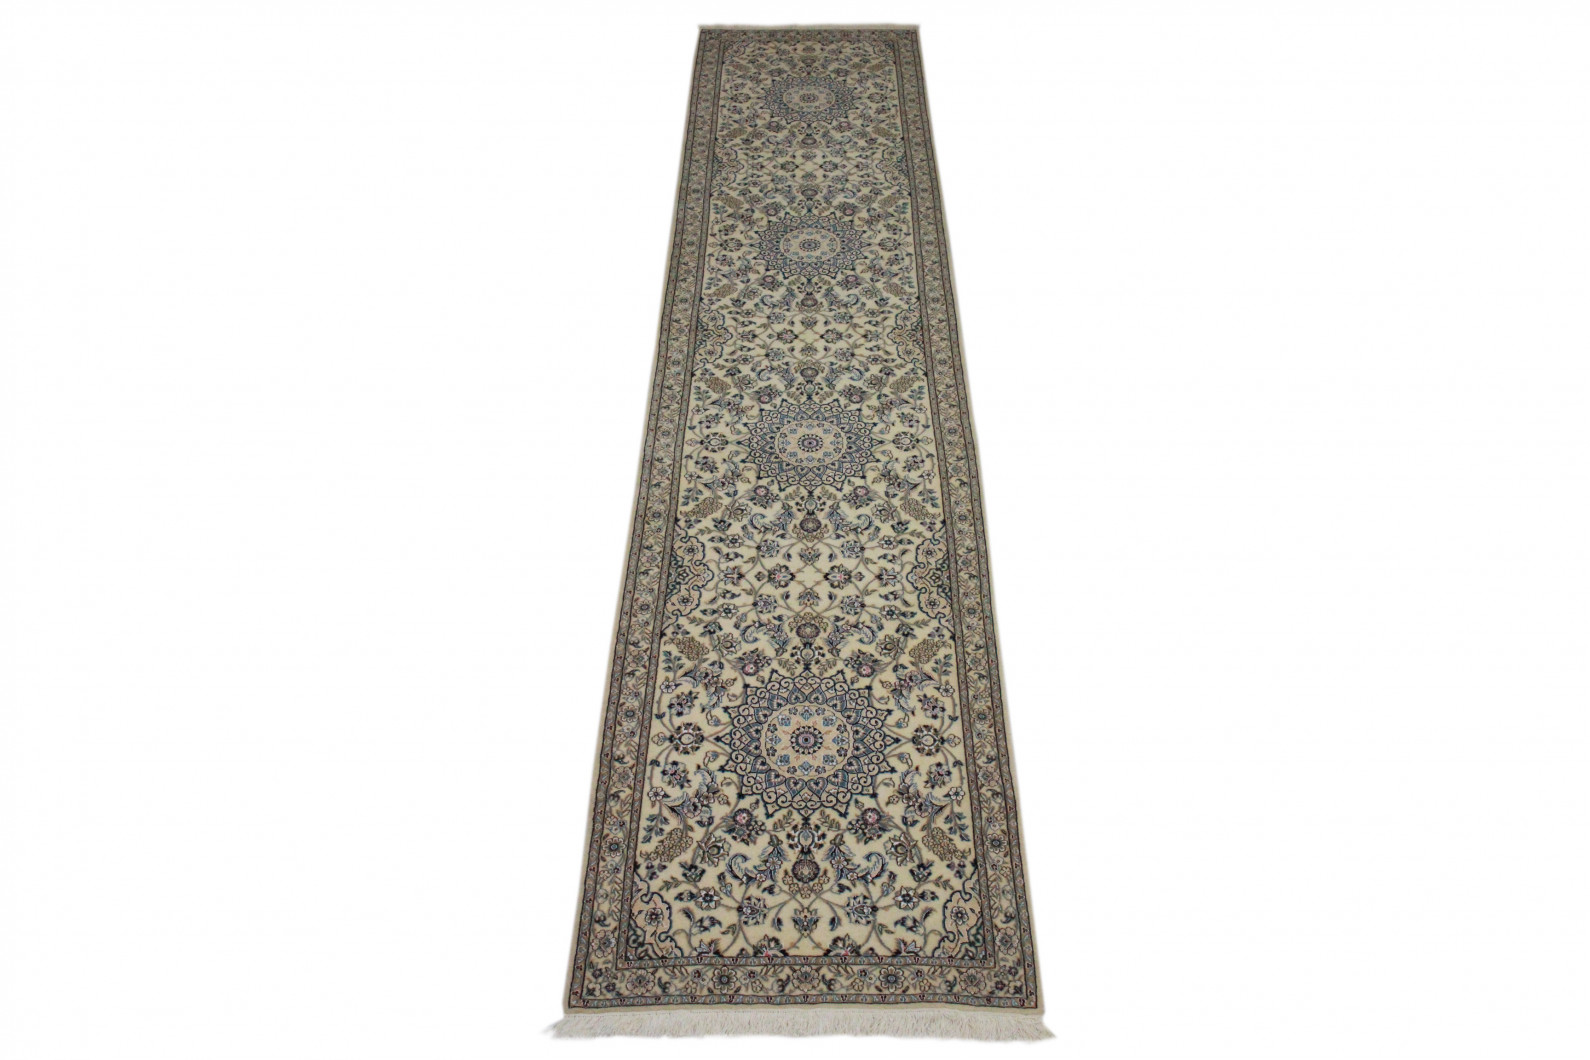 nain teppich beige blau in 420x90 5120 27464 bei kaufen. Black Bedroom Furniture Sets. Home Design Ideas